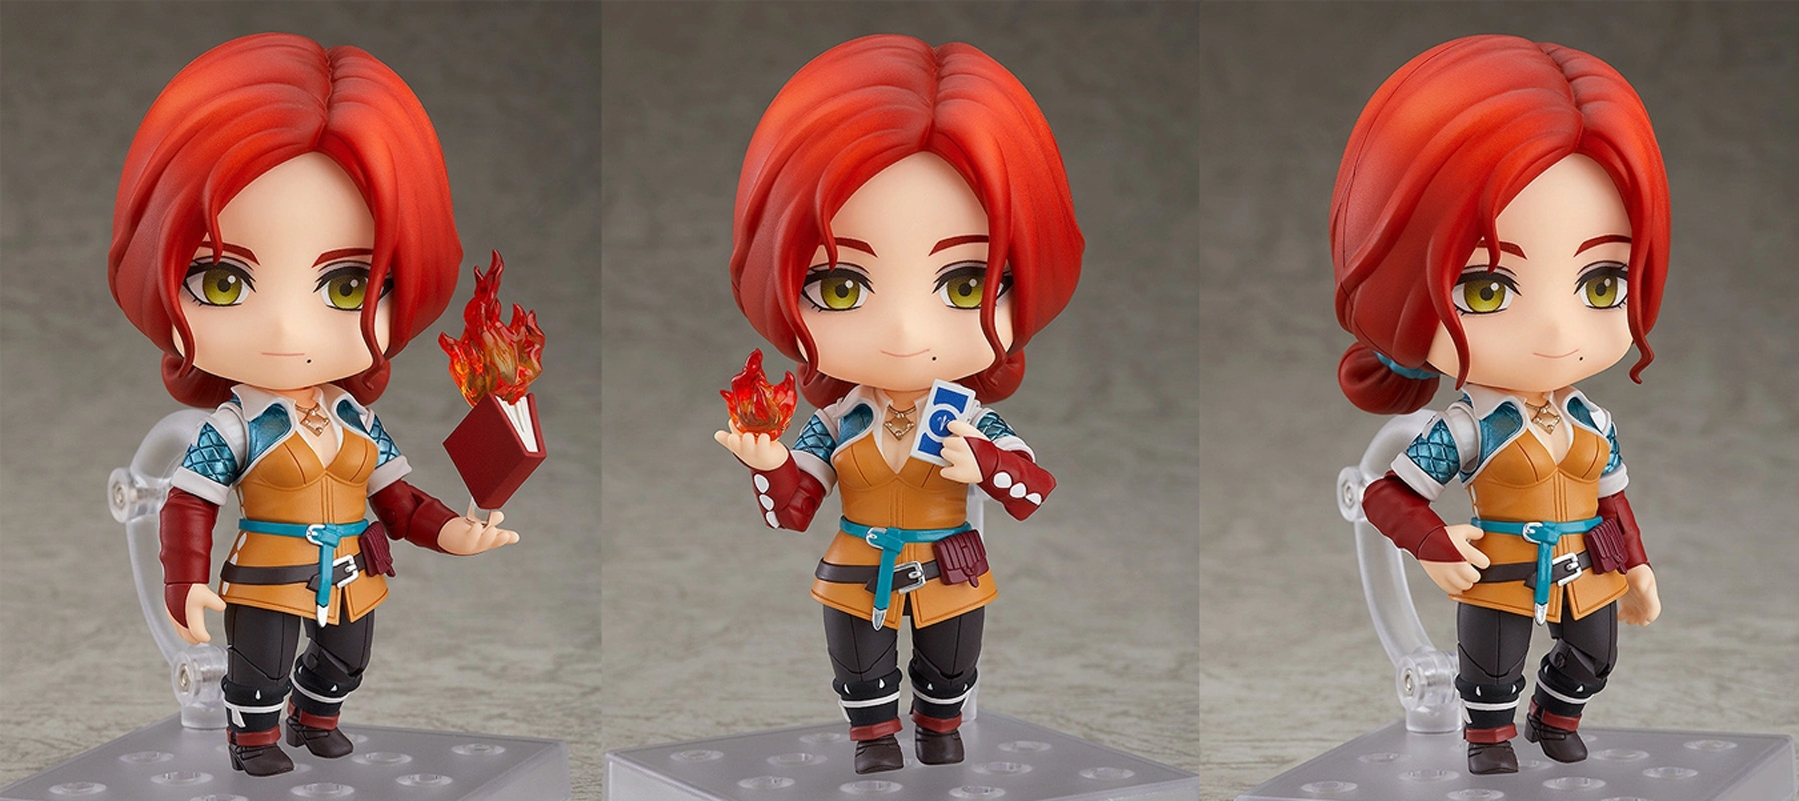 Good Smile Company Announces Nendoroid Triss Merigold From The Witcher 3